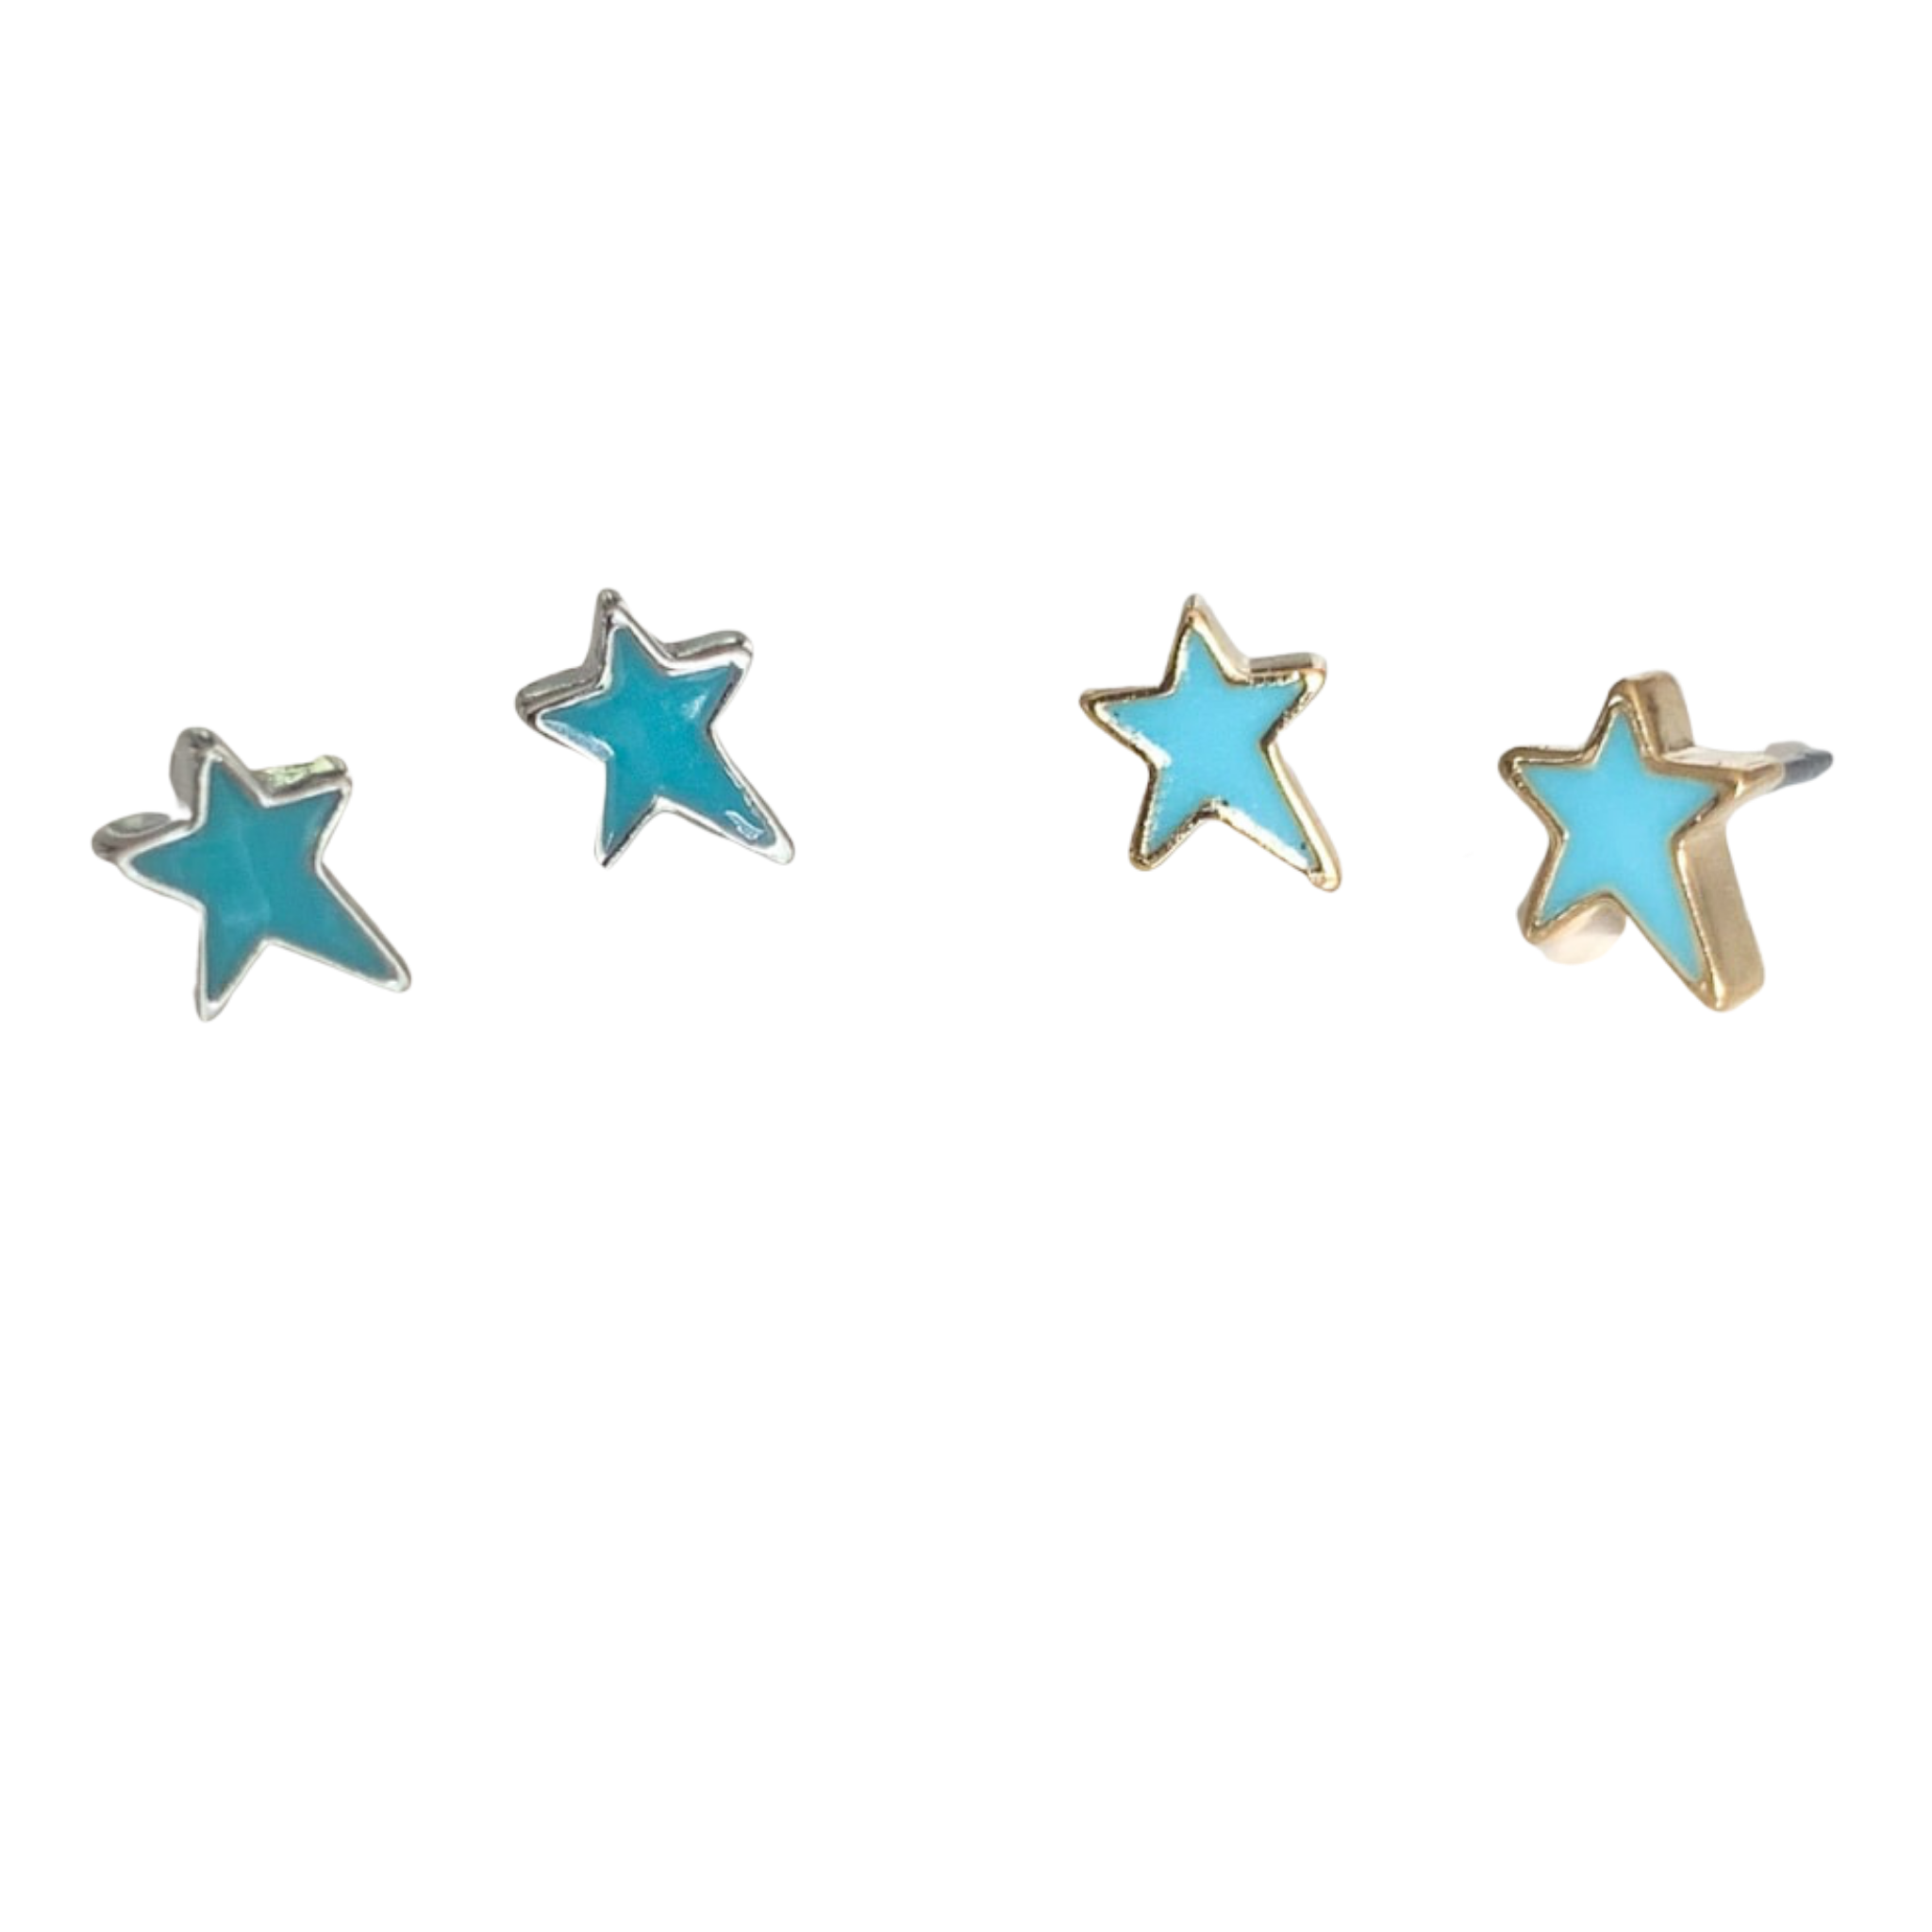 Shana Enamel Star Pierced Stud Earrings (Gold and Silver)